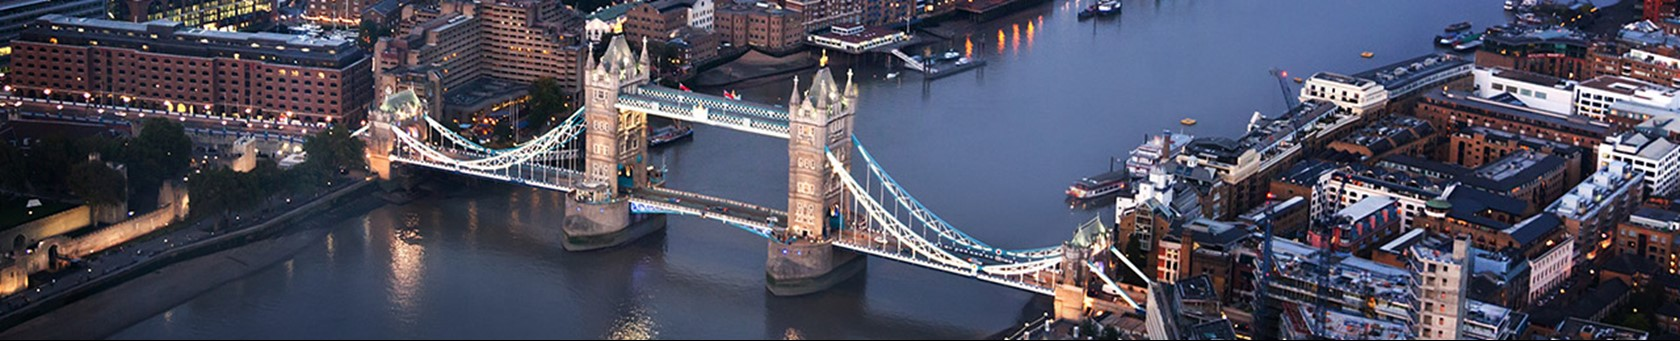 tower_bridge.jpg